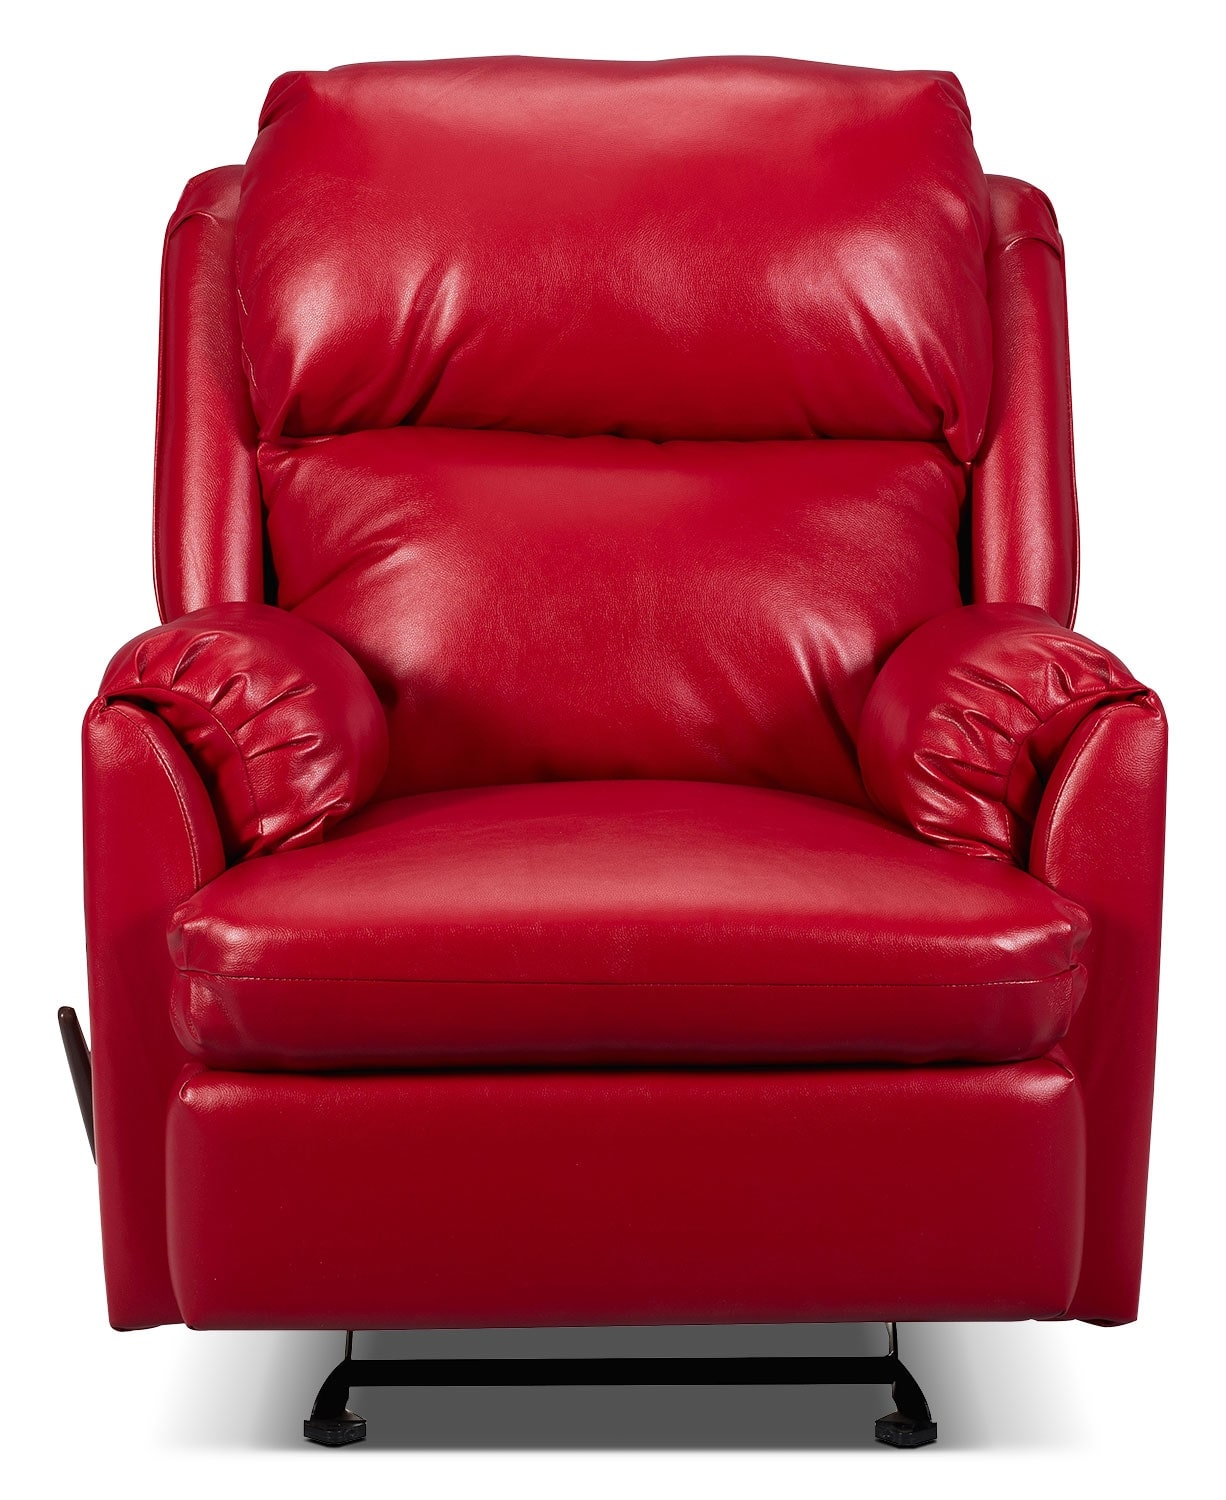 Living Room Furniture - Drogba Faux Leather Reclining Chair - Red